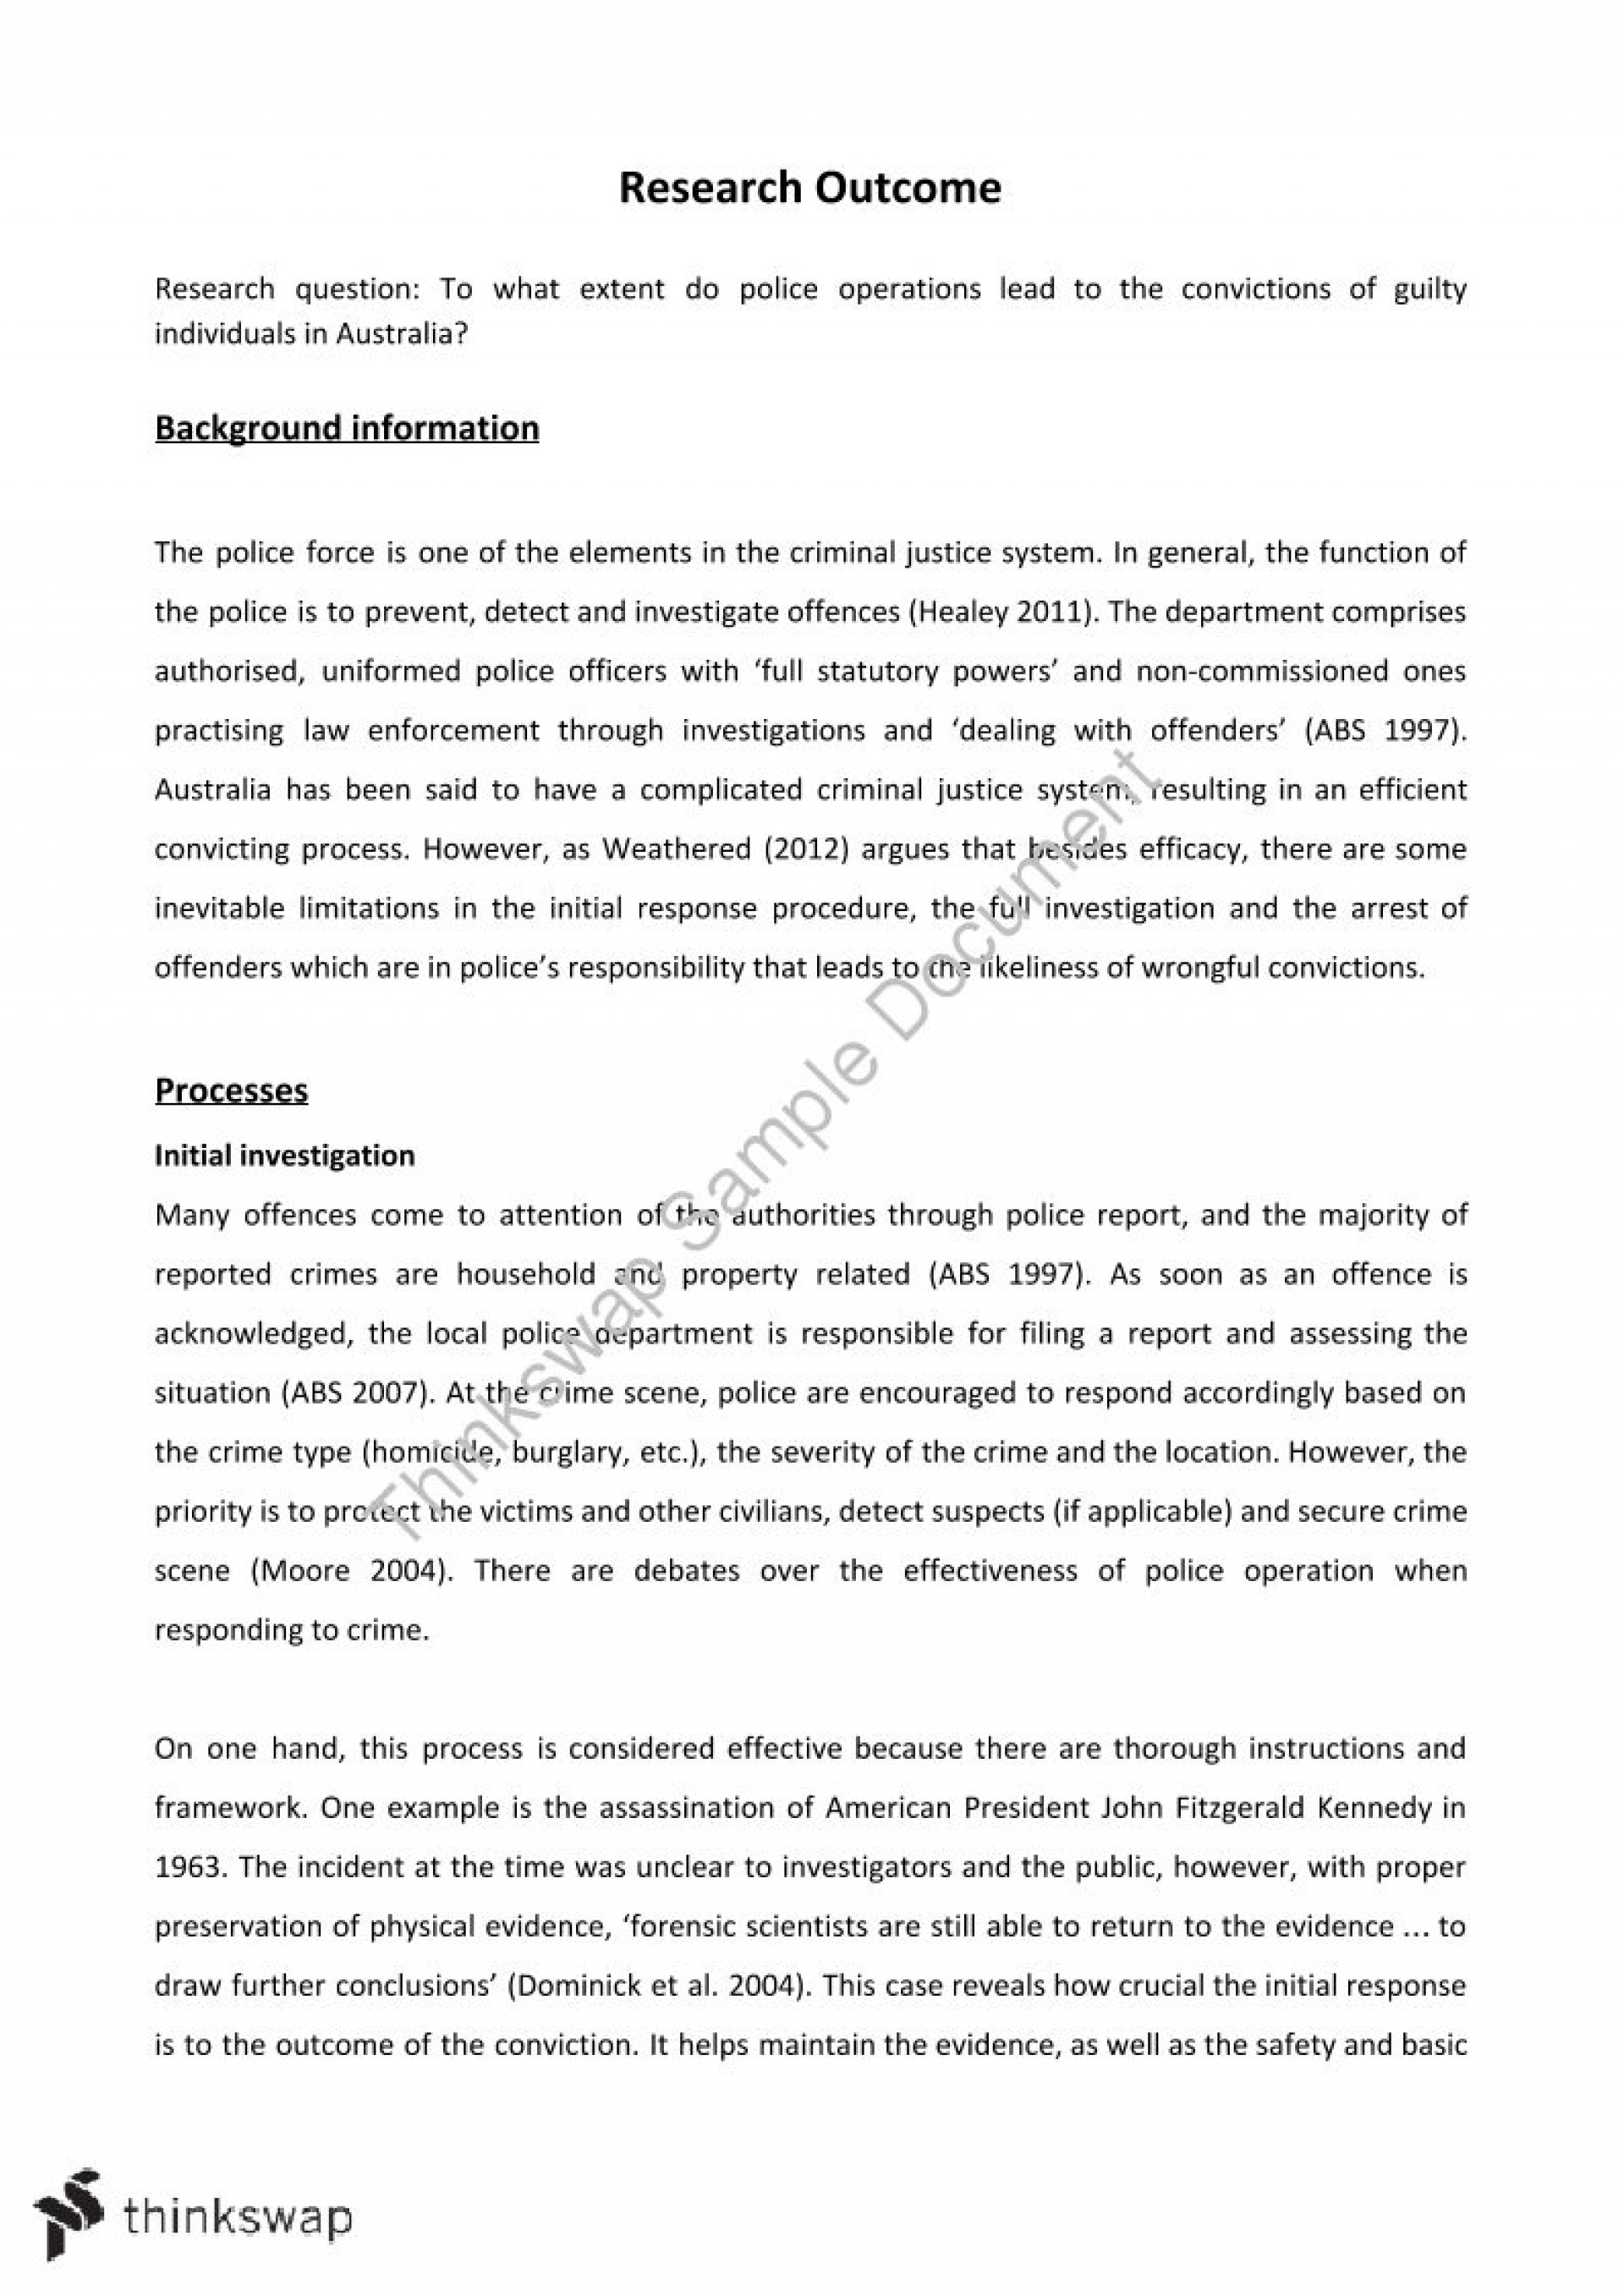 003 Top Research Project Proposal Example Sace 1920